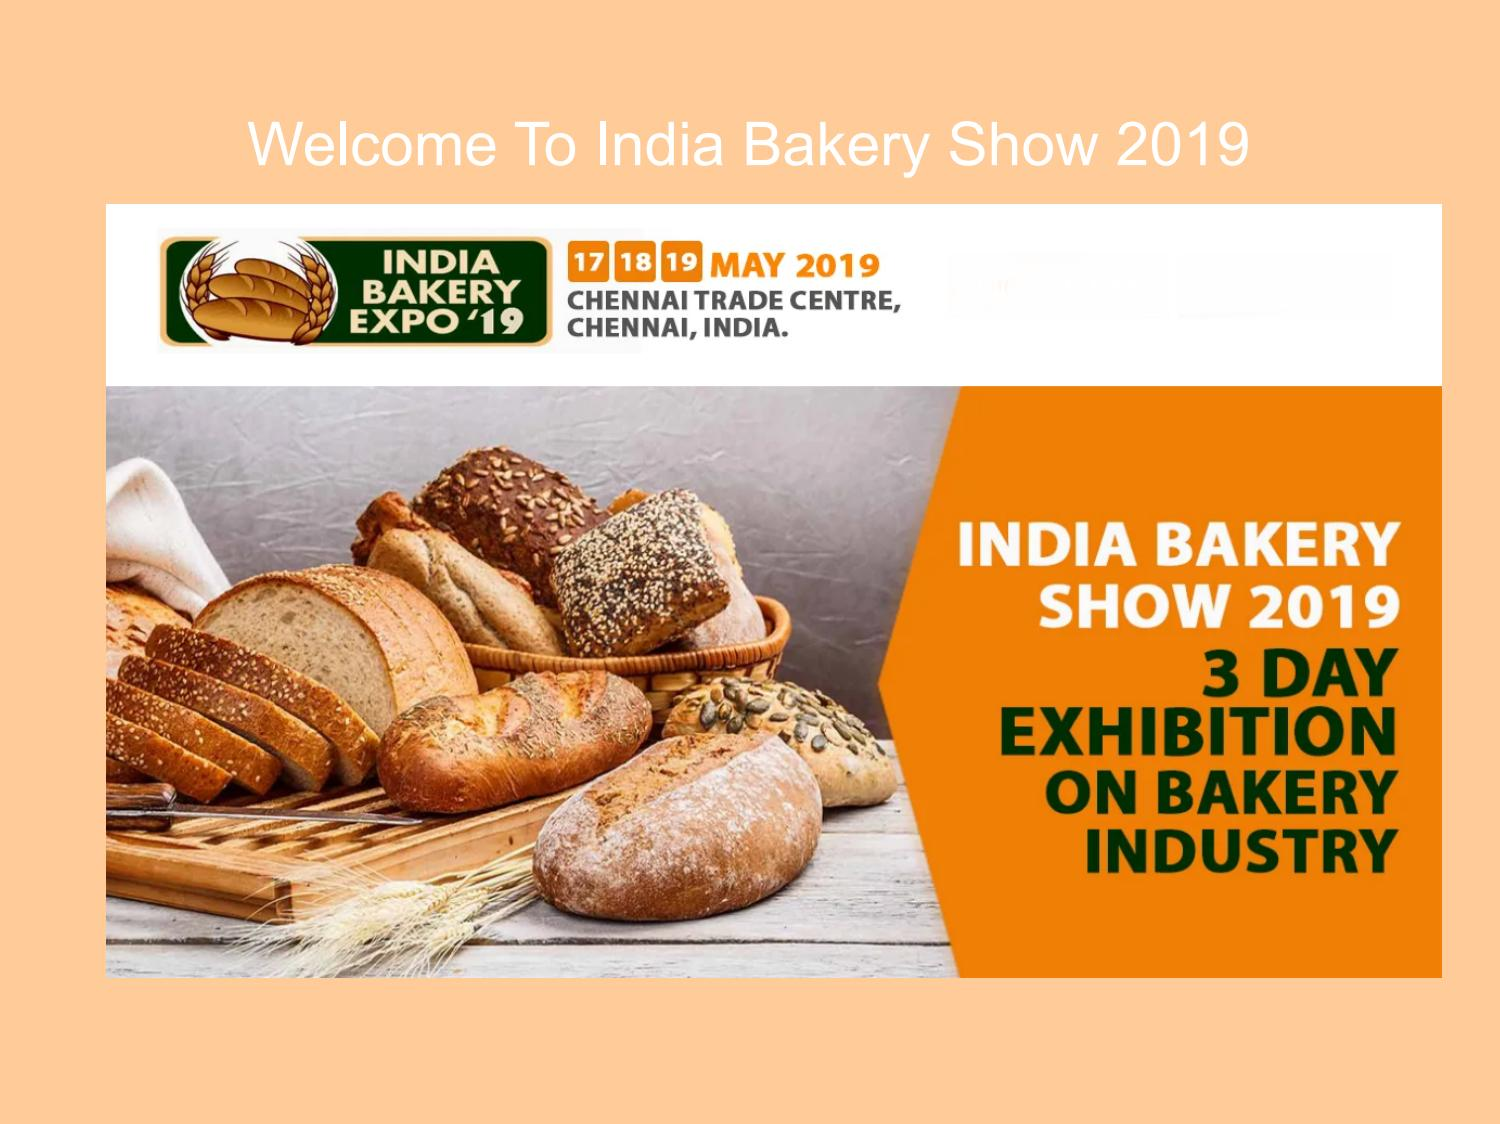 Welcome To India Bakery Show 2019 by b2btradefairs - issuu